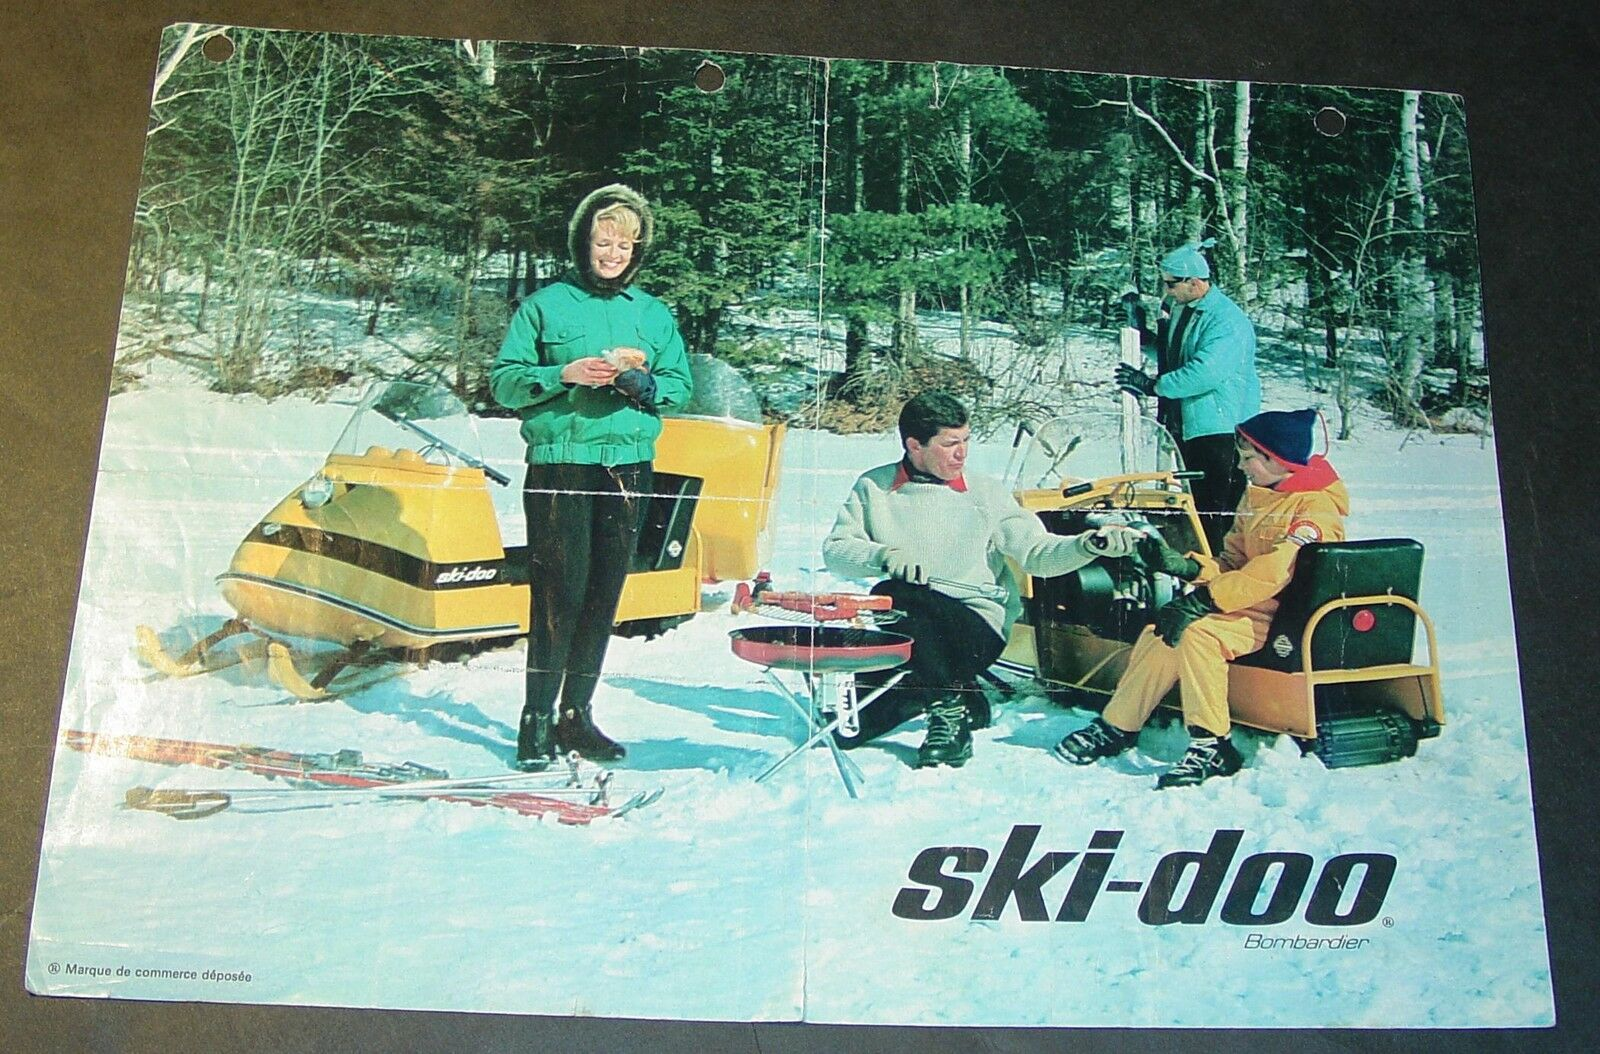 RARE VINTAGE 1966 SKI-DOO SNOWMOBILE SALES  BROCHURE SINGLE PAGE FRENCH  online shopping sports